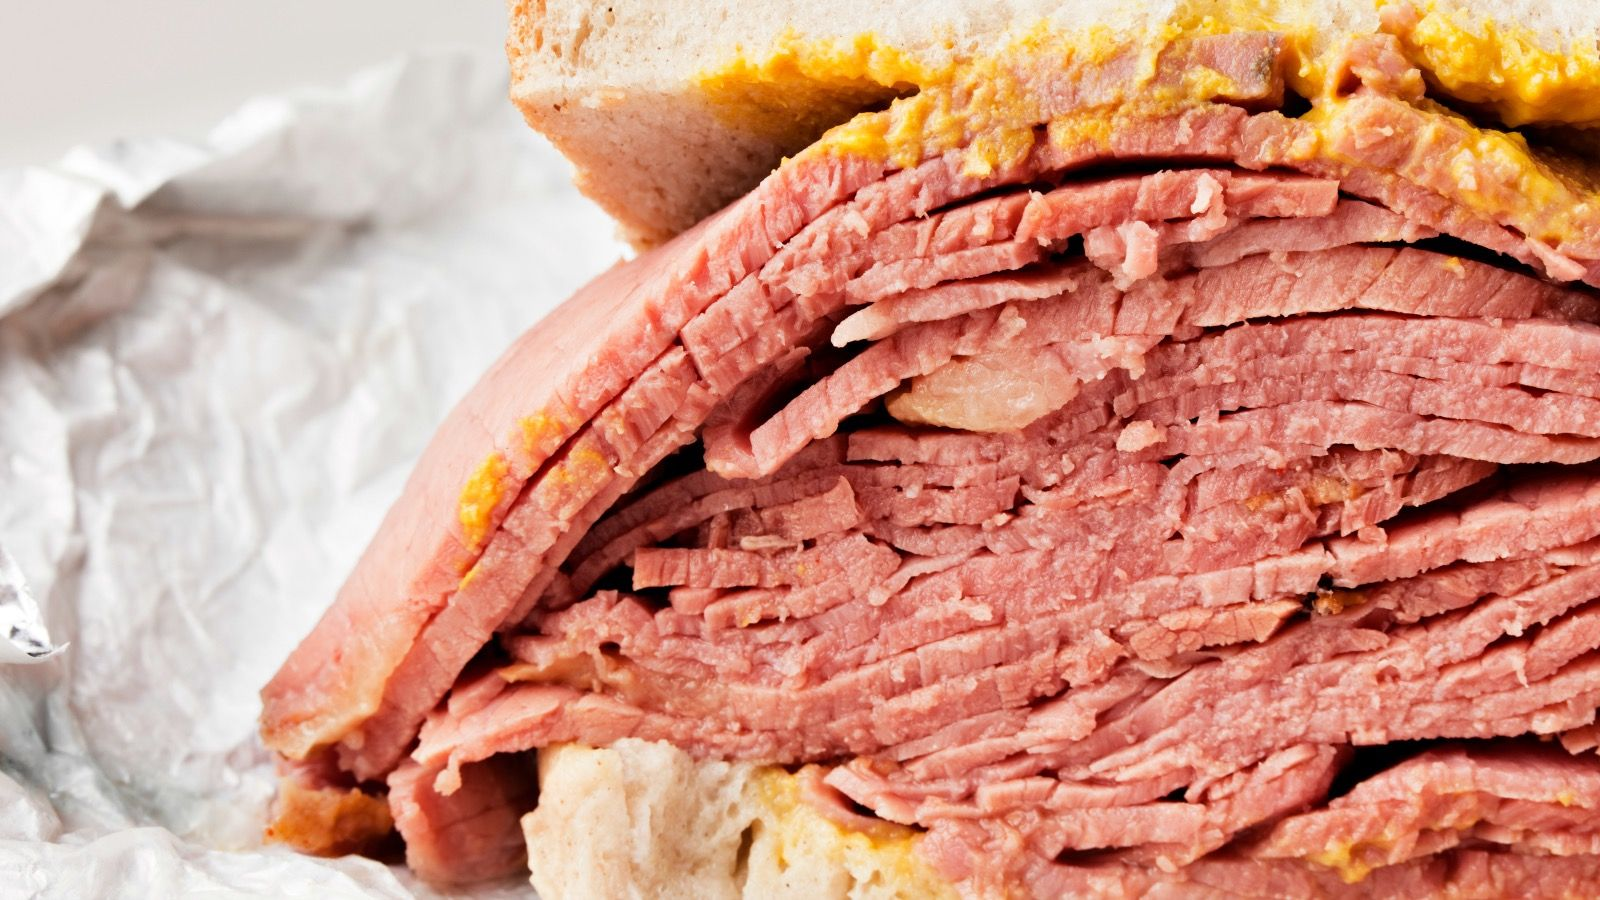 A classic pastrami sandwich on rye.